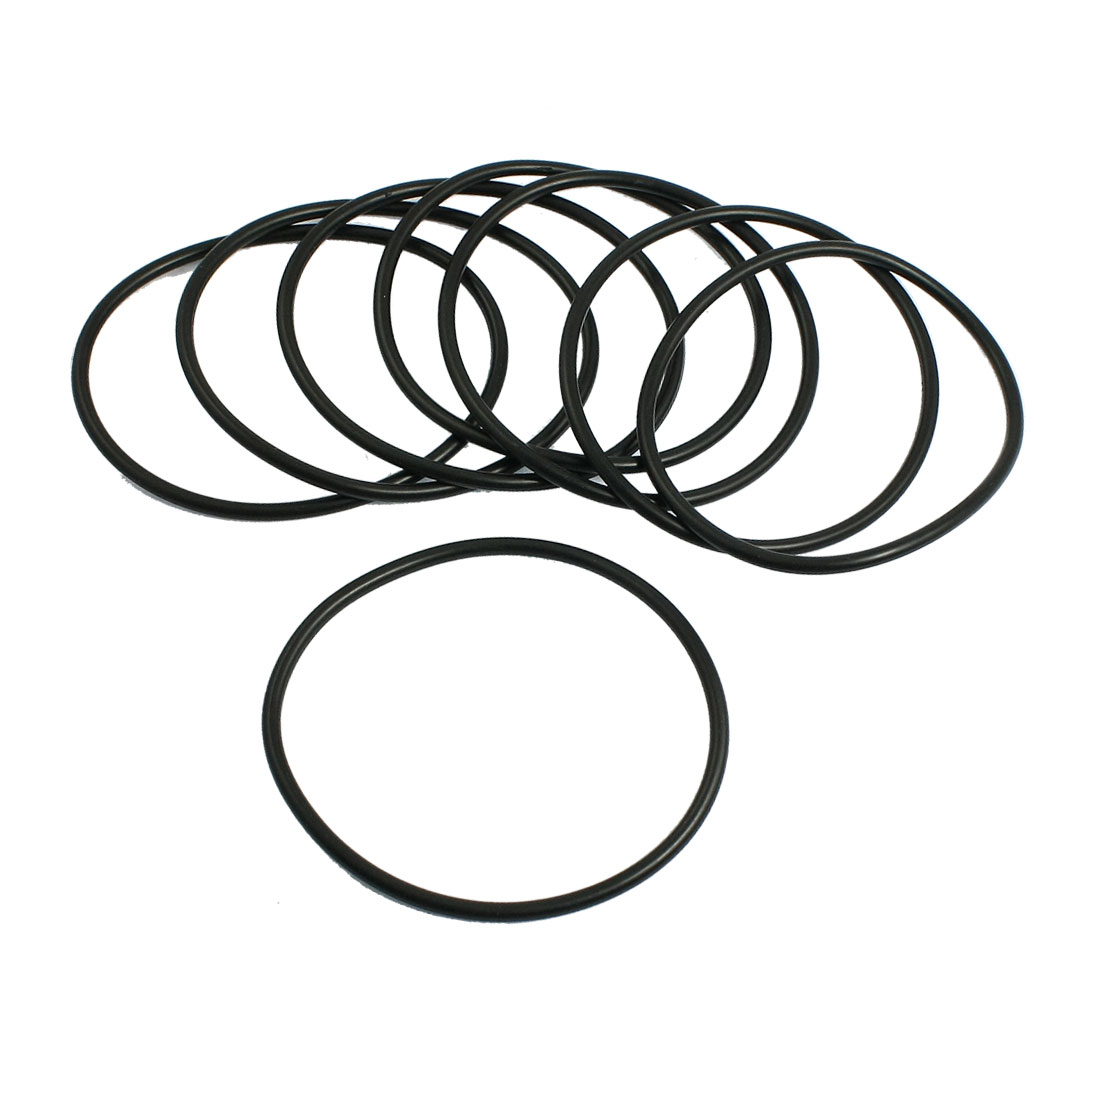 3.1mm x 72mm Nitrile Rubber O Type Sealing Ring Gasket Grommets Black 10Pcs